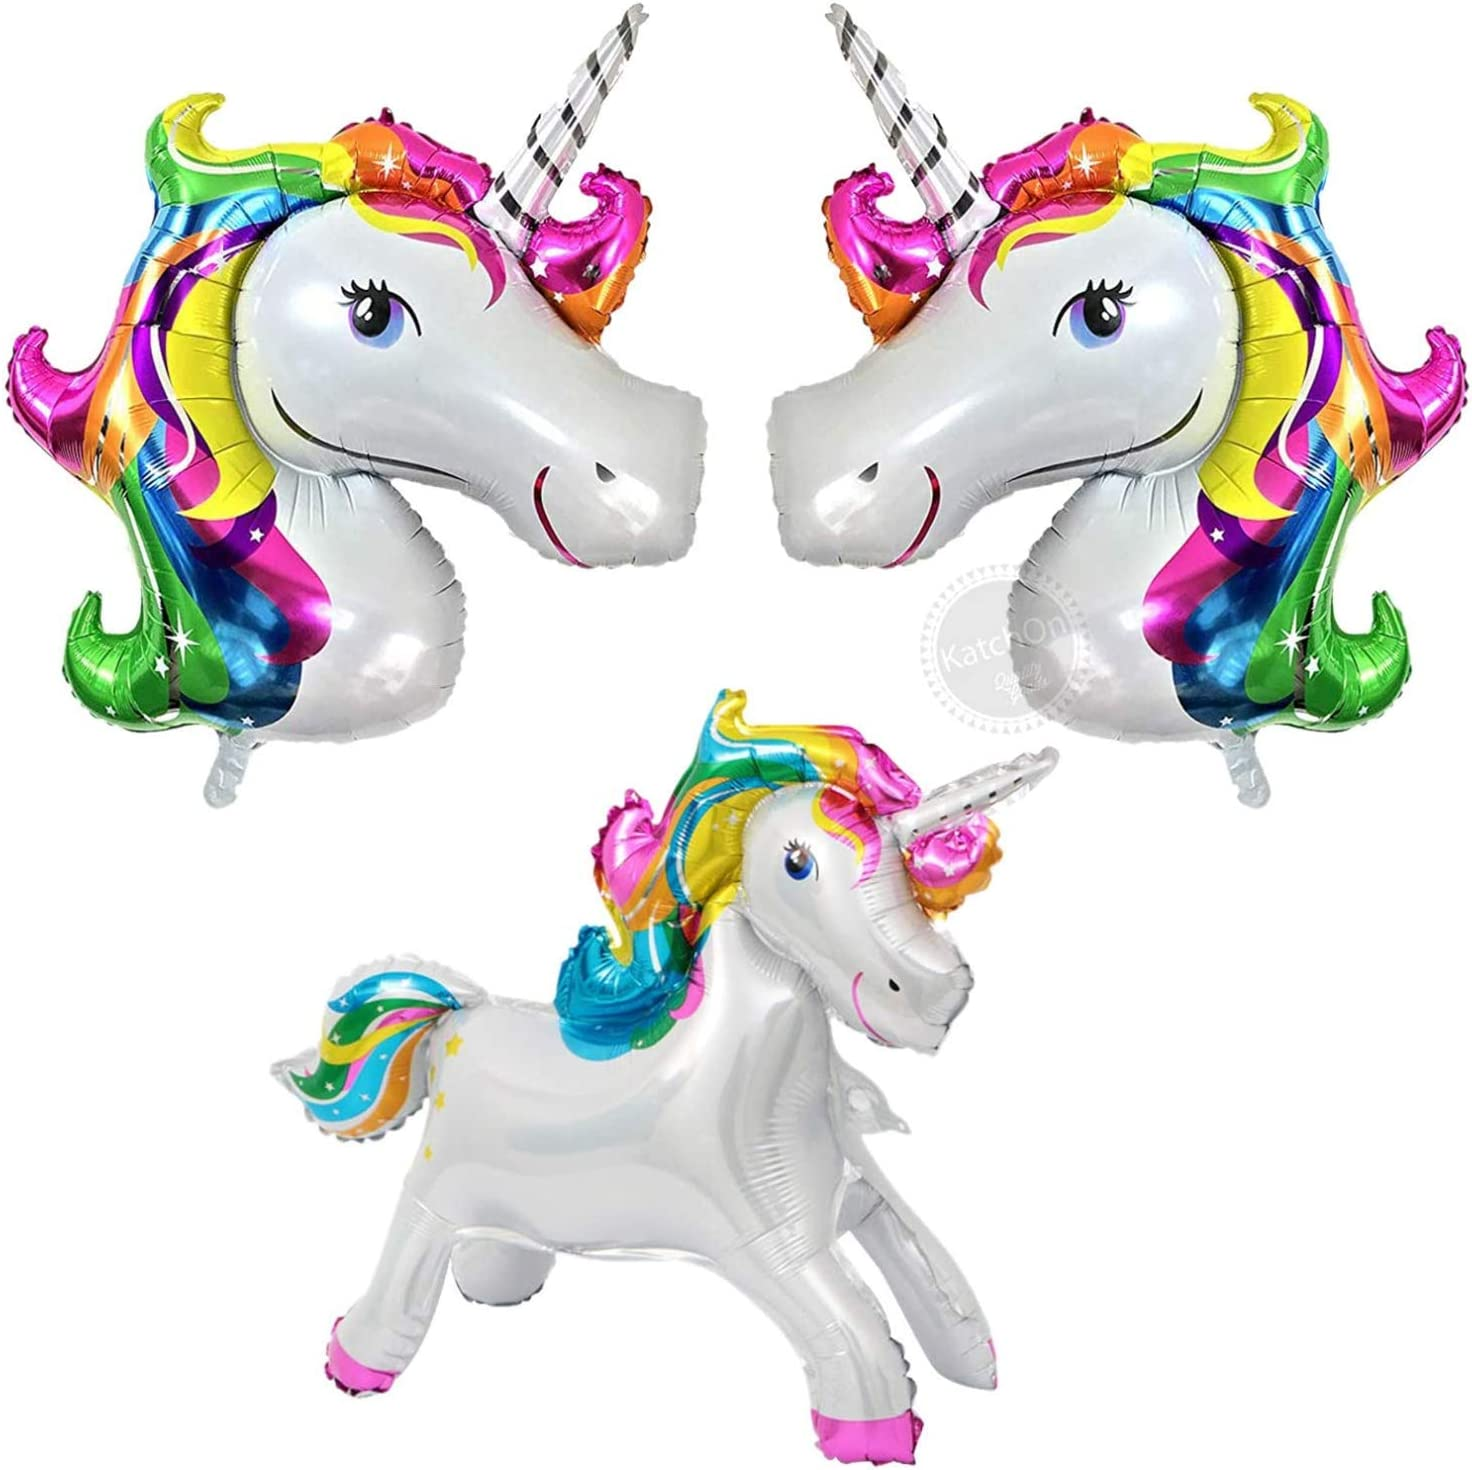 Unicorn Balloons Decorations Set - 42inch, Large, Pack of 3 | One Standing Mylar Unicorn Balloon - 23 inch| Unicorn Theme Birthday Decorations | Unicorn Party Supplies for Girls and Kid's Birthday Decorations Supplies